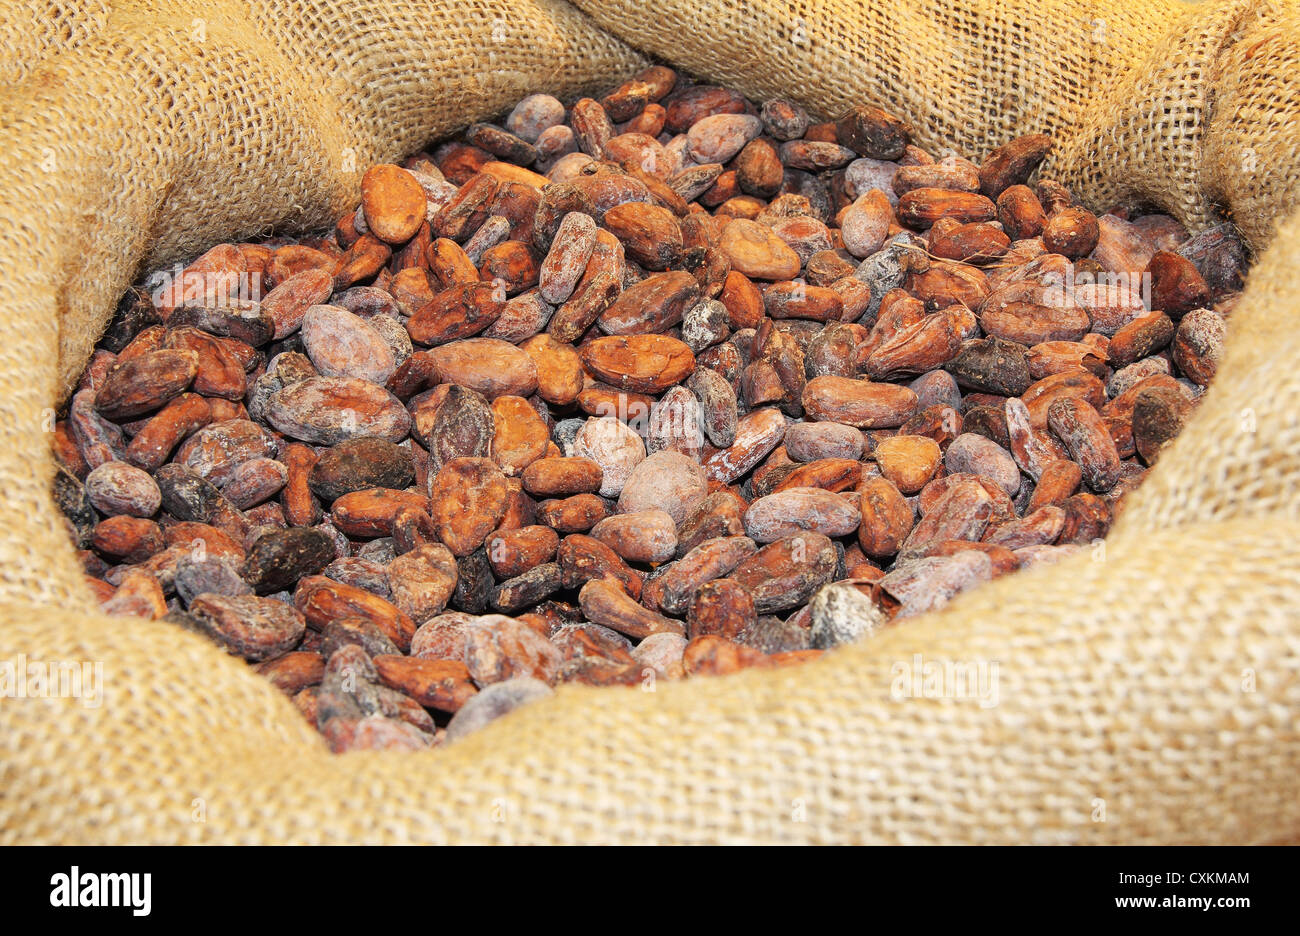 A lot of cocoa beans in a jute bag - Stock Image